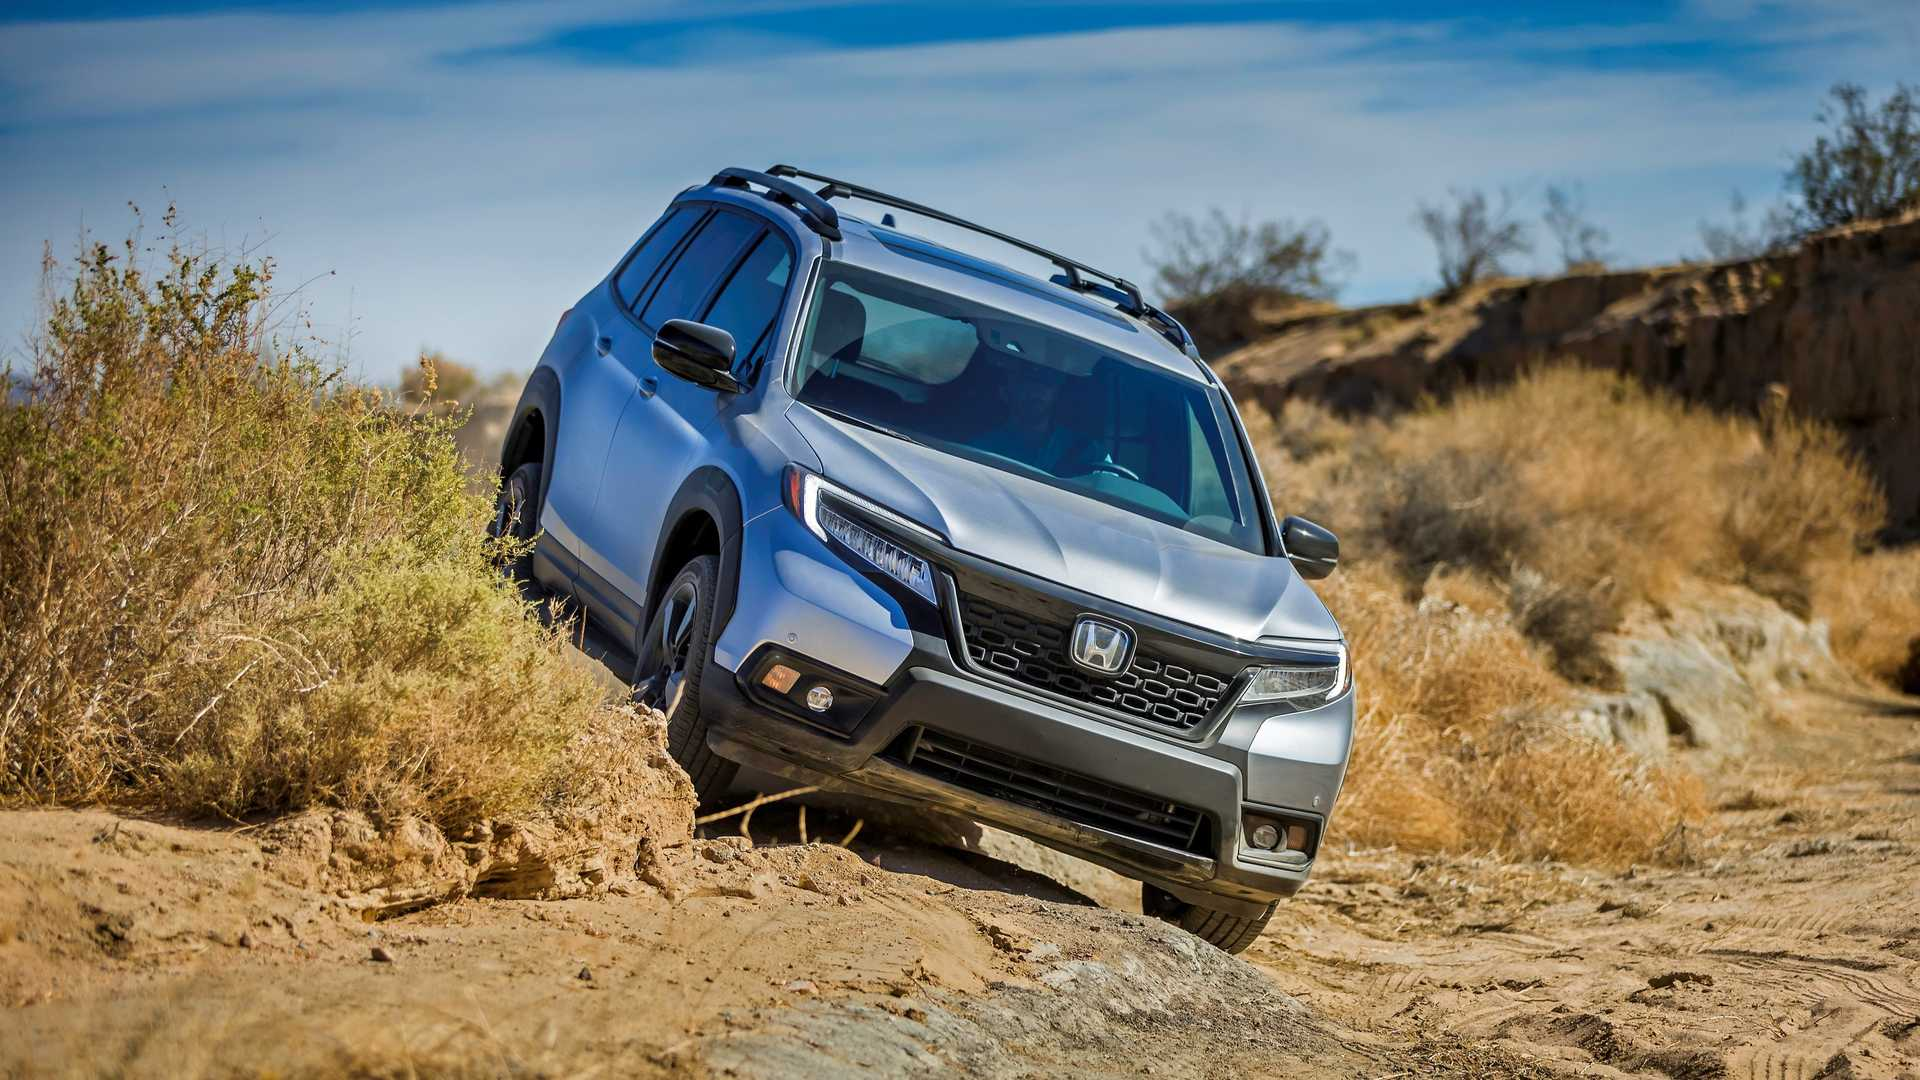 Honda Passport 2019 (8)